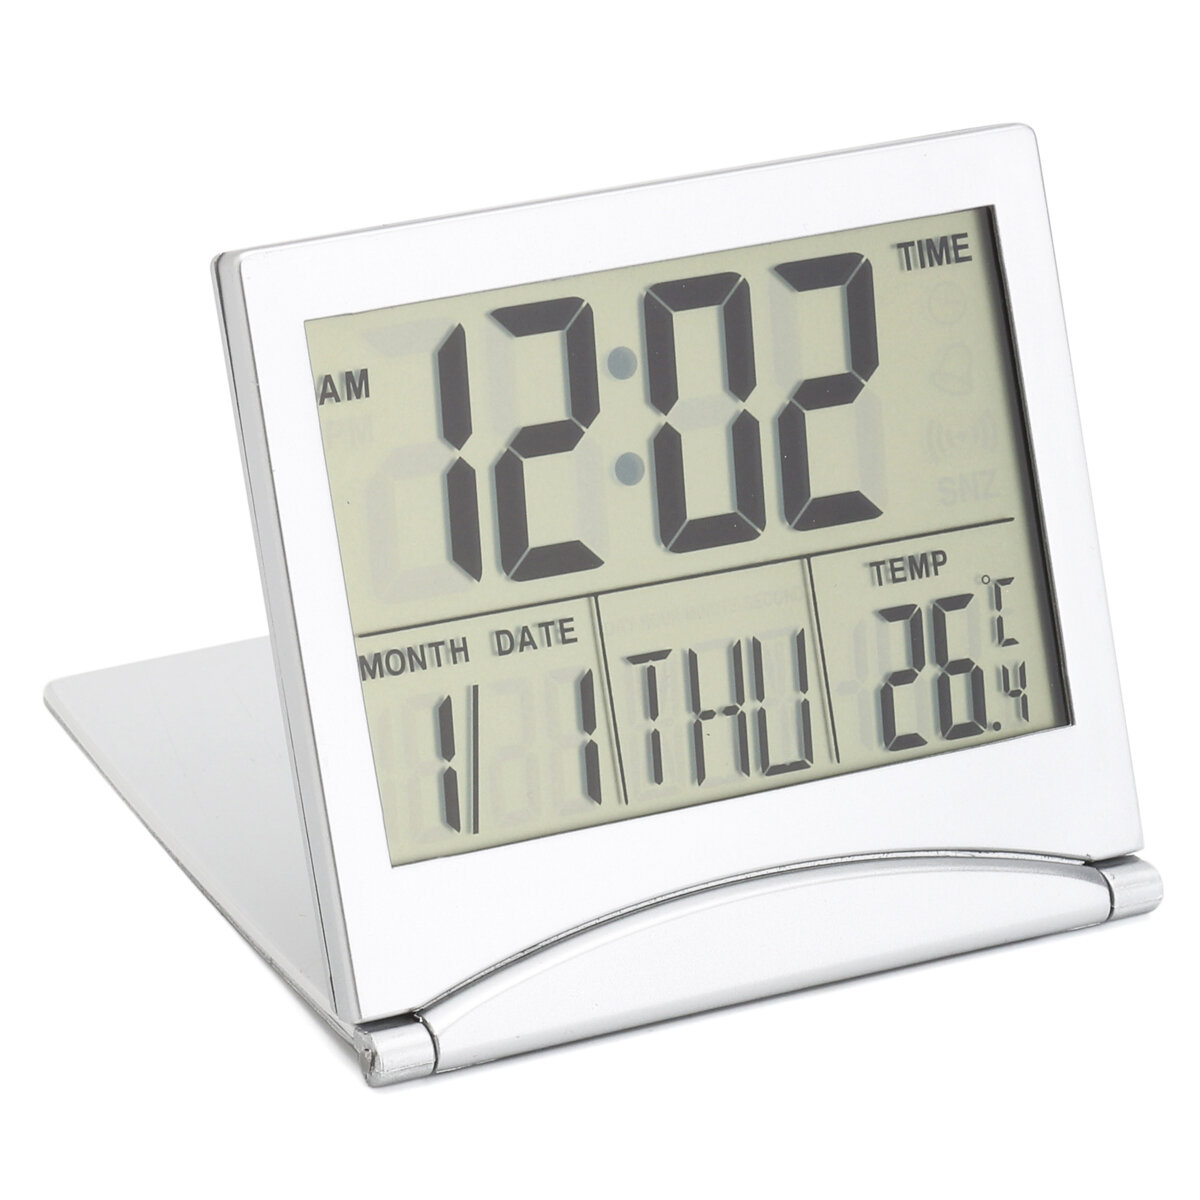 Digital Lcd Screen Travel Alarm Clocks Table Desk Thermometer Timer